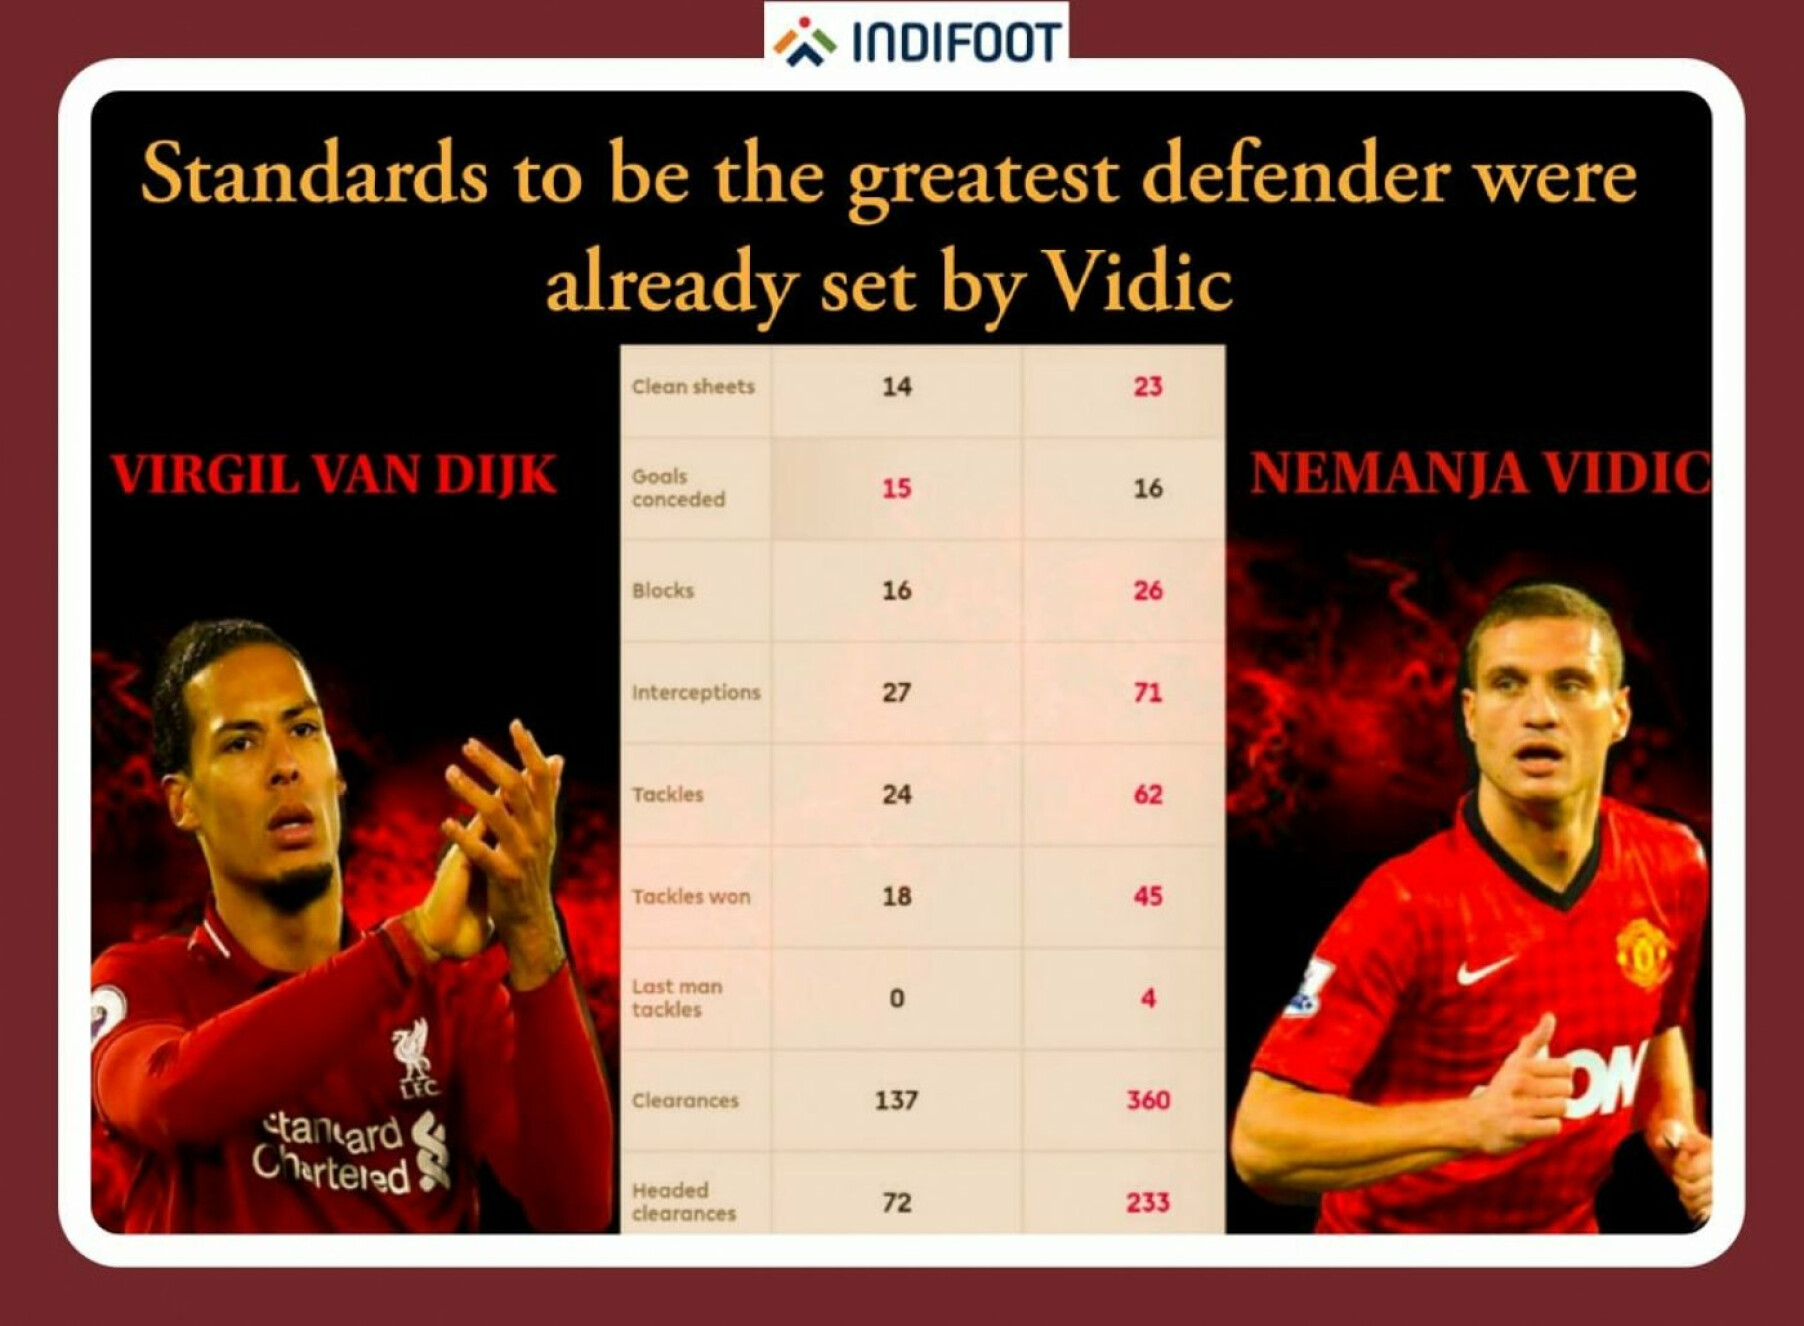 Is Liverpool's Virgil Van Dijk really the greatest defender over one full season?